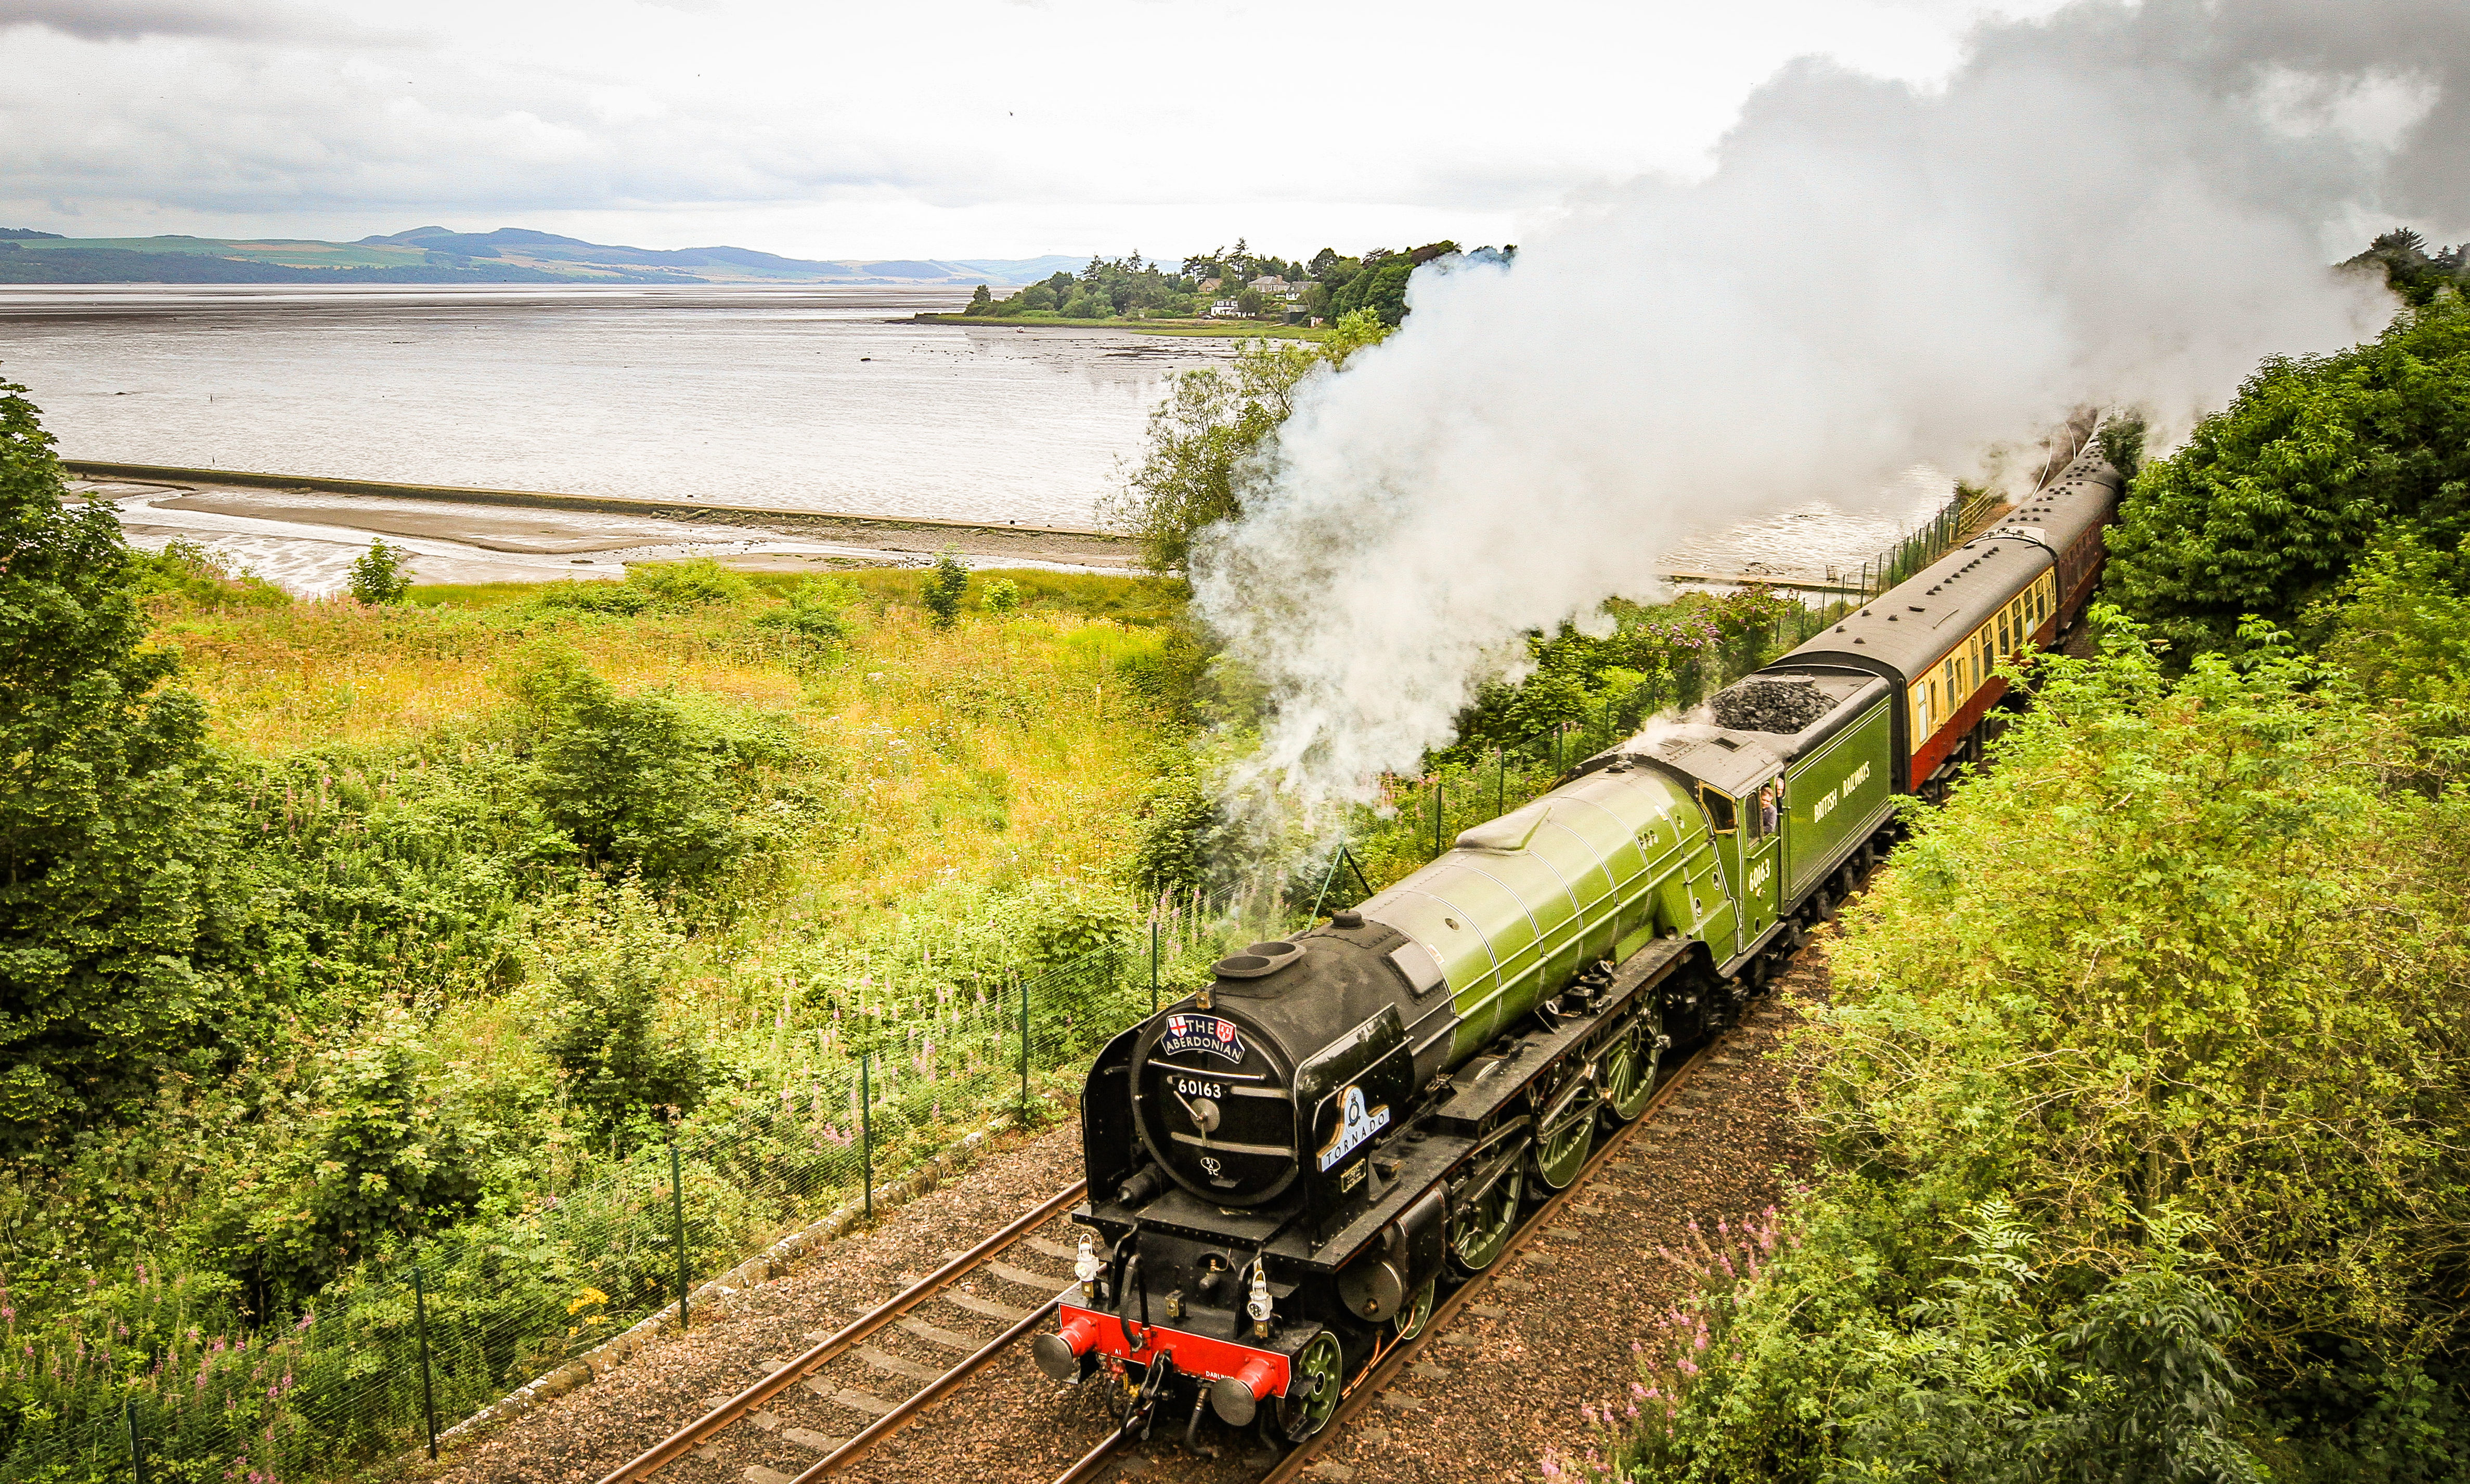 The Aberdonian travelling through Invergowrie en route to Aberdeen. Pictures and video by Kris Miller.